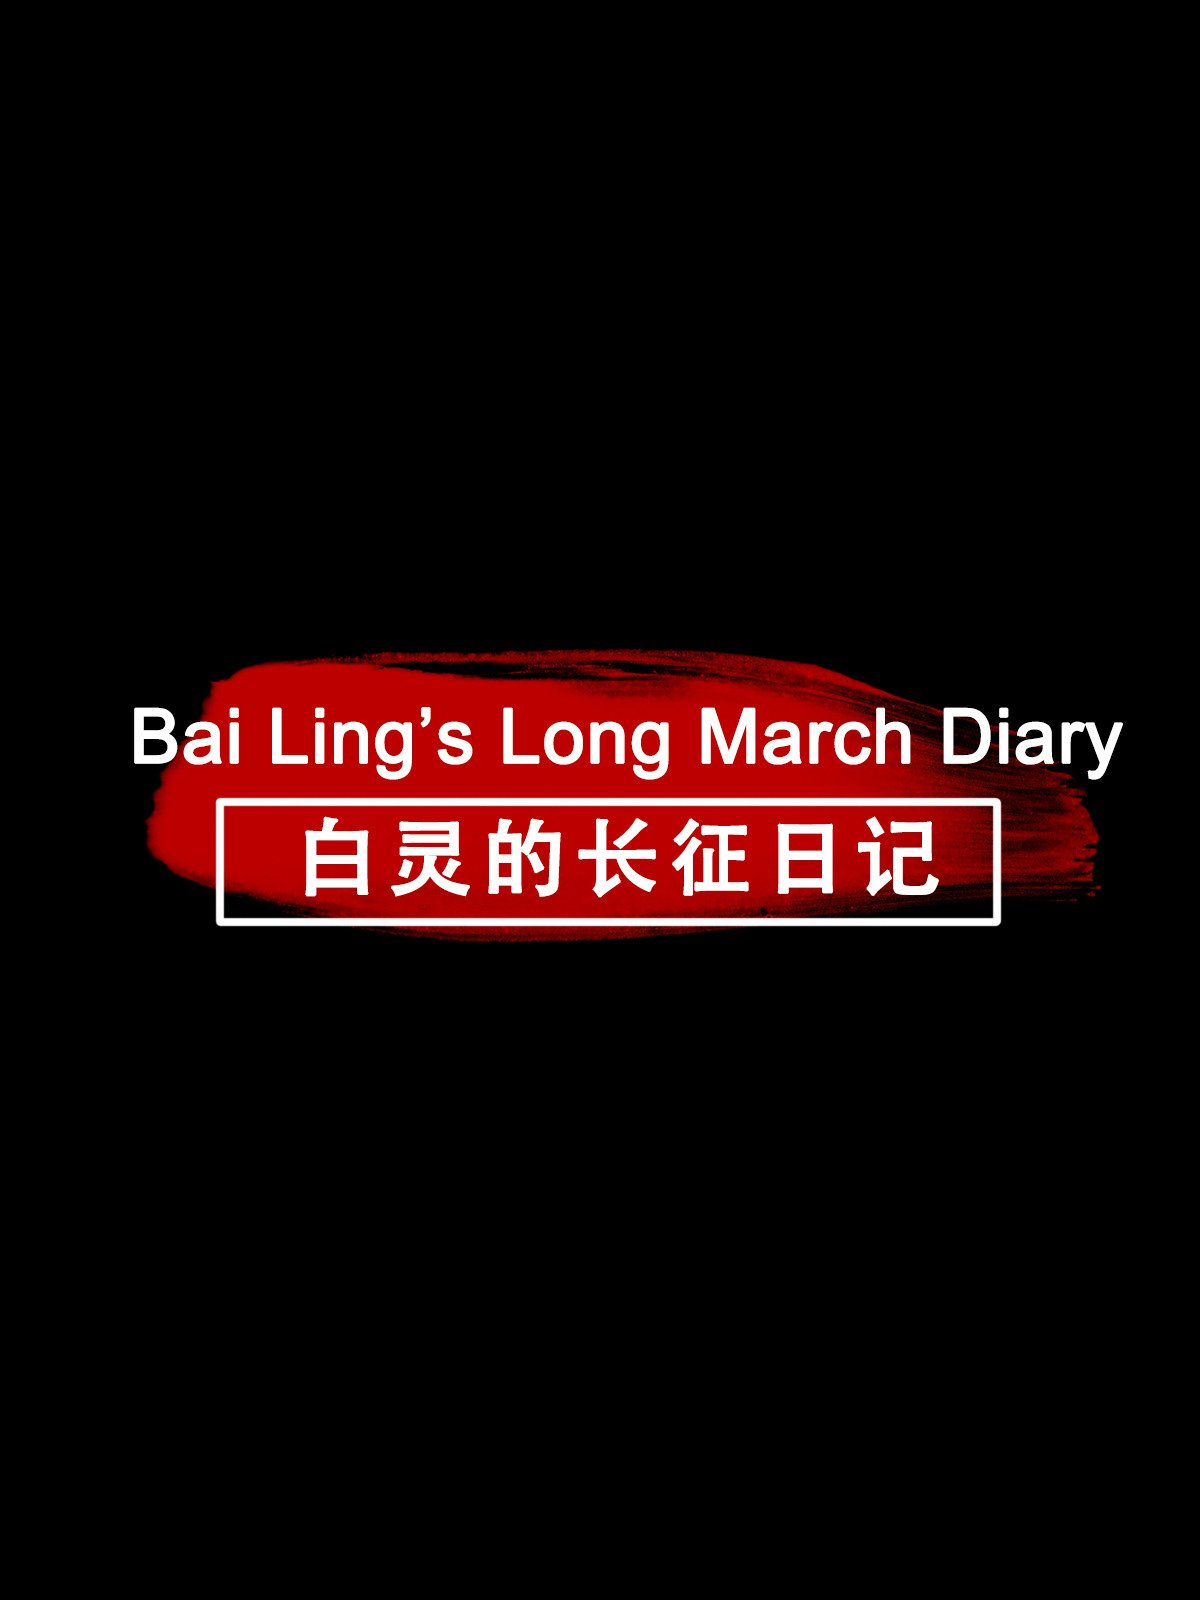 Bai Ling's Long March Diary